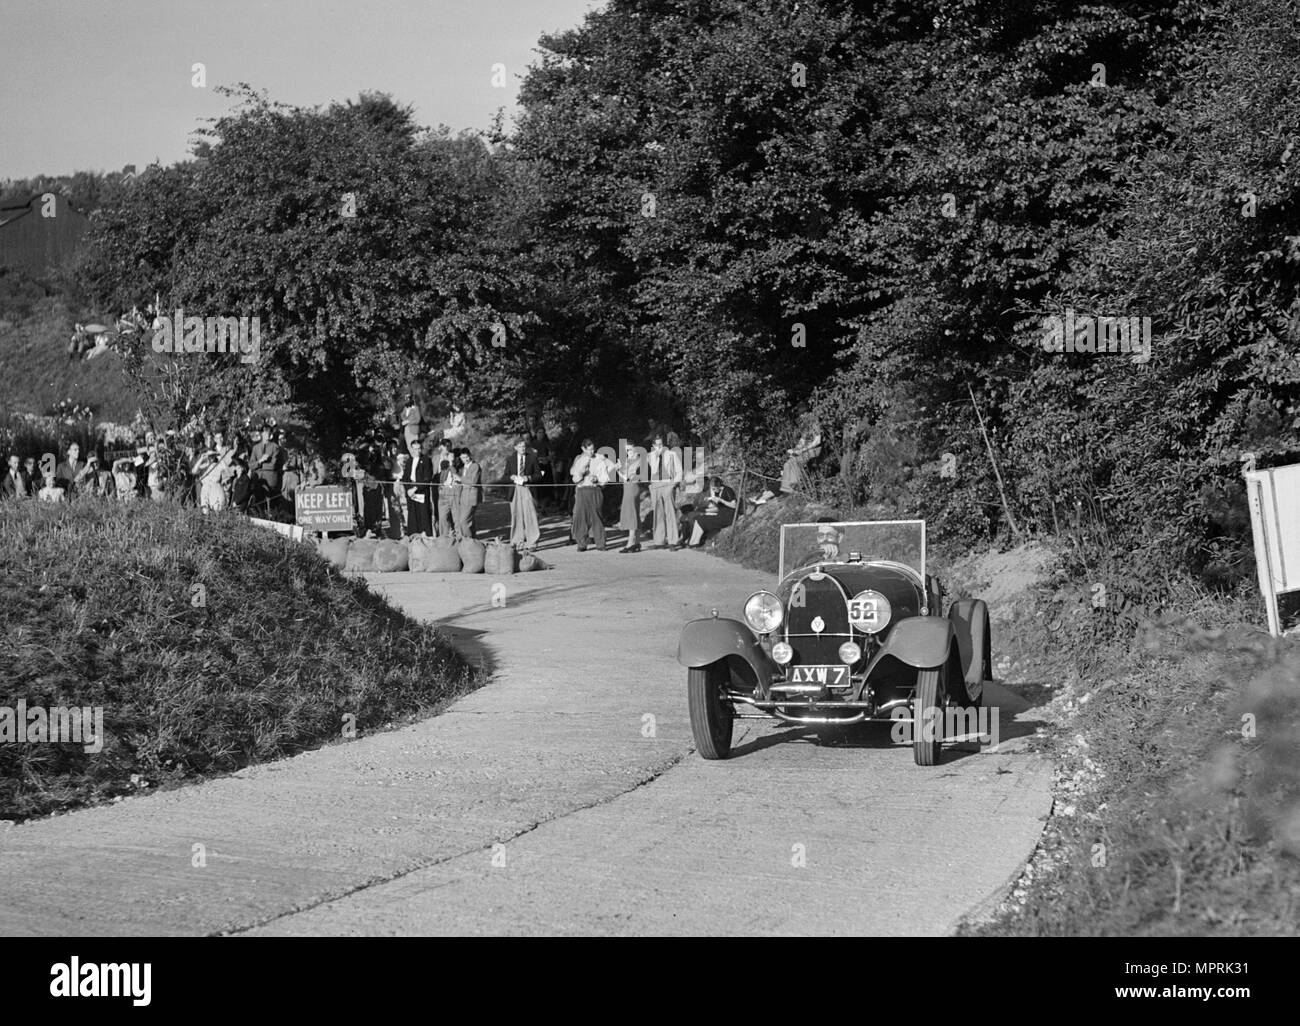 Bugatti Type 43 of GM Crozier competing in the VSCC Croydon Speed Trials, 1937. Artist: Bill Brunell. - Stock Image